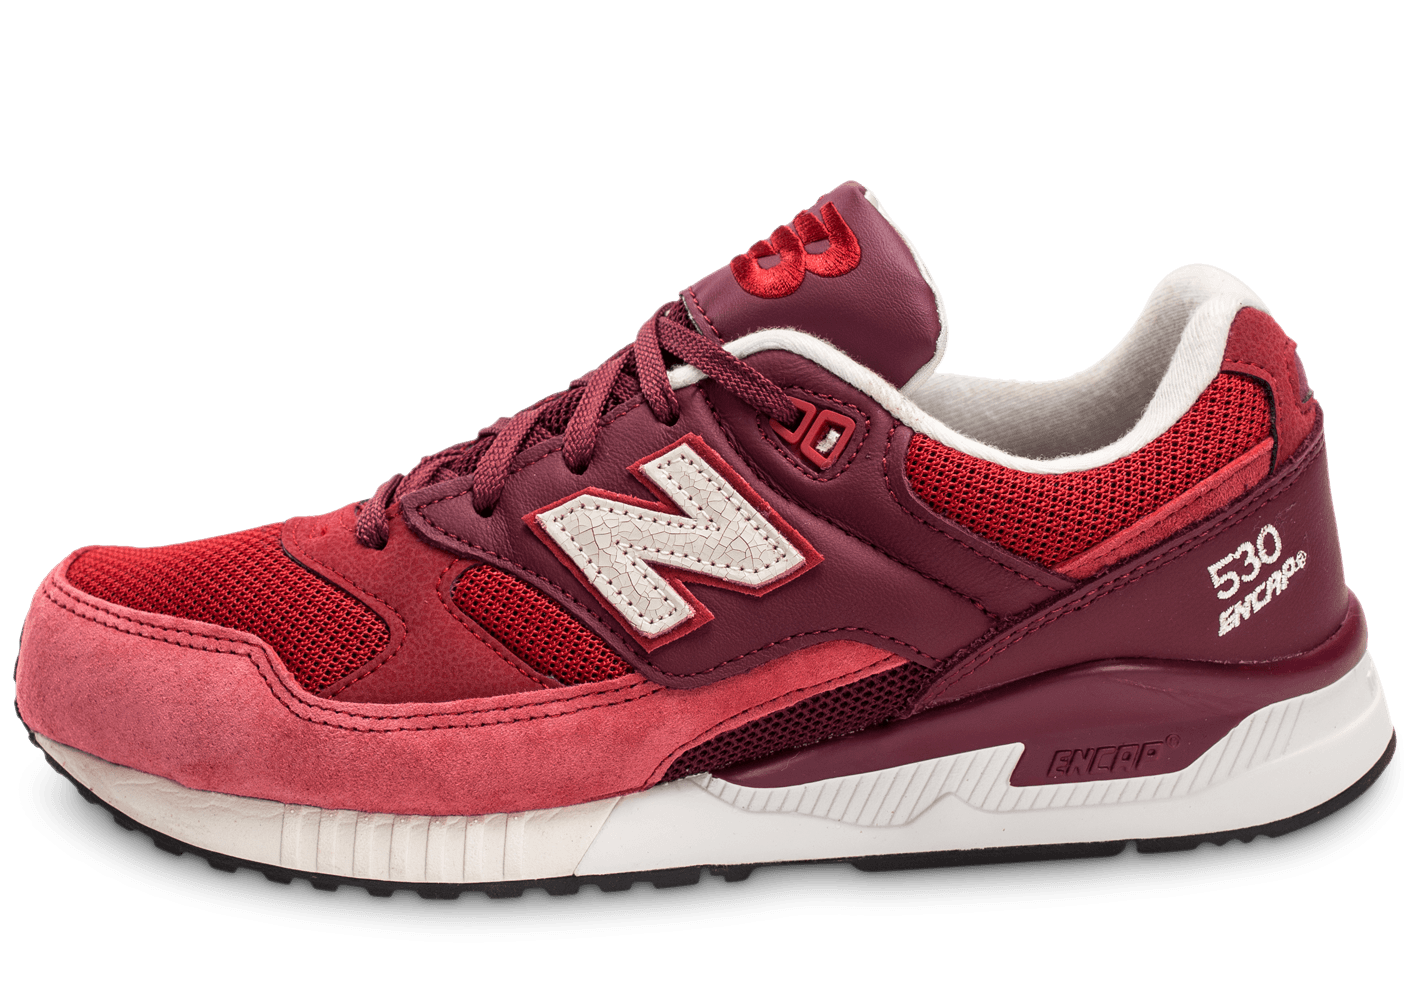 New Balance 580 Rouge Bordeaux